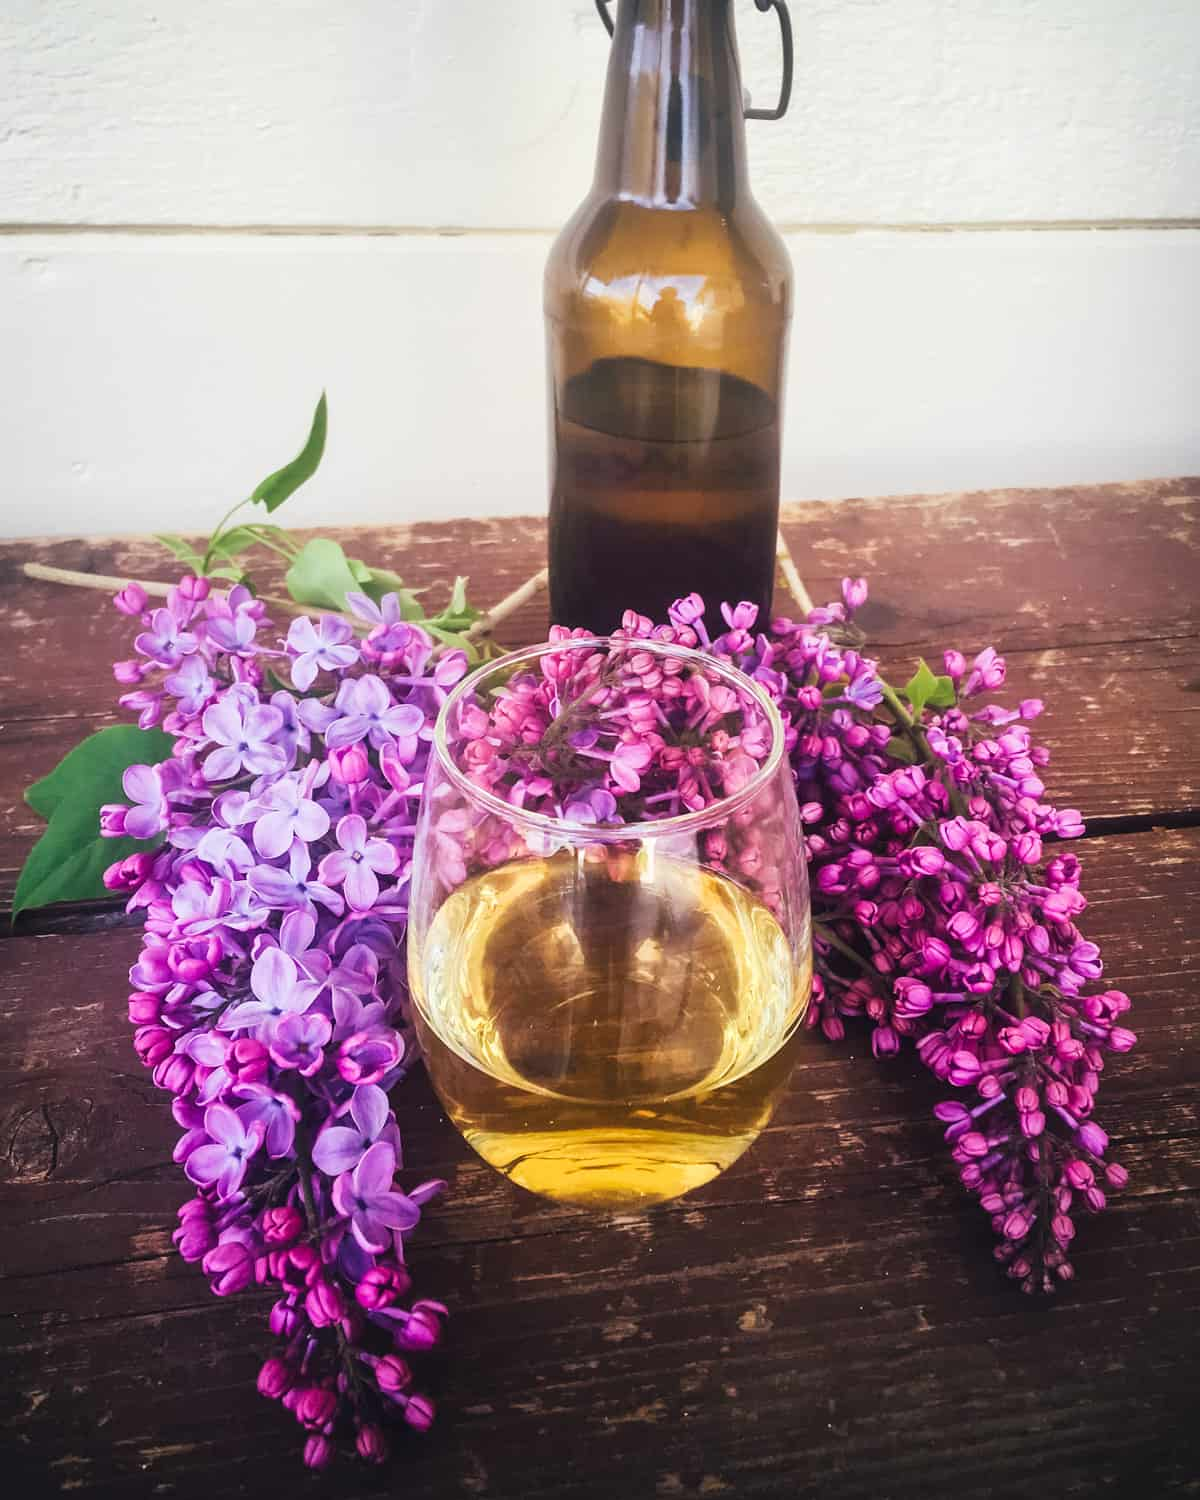 a bottle and glass of lilac mead on a table with lilac flowers